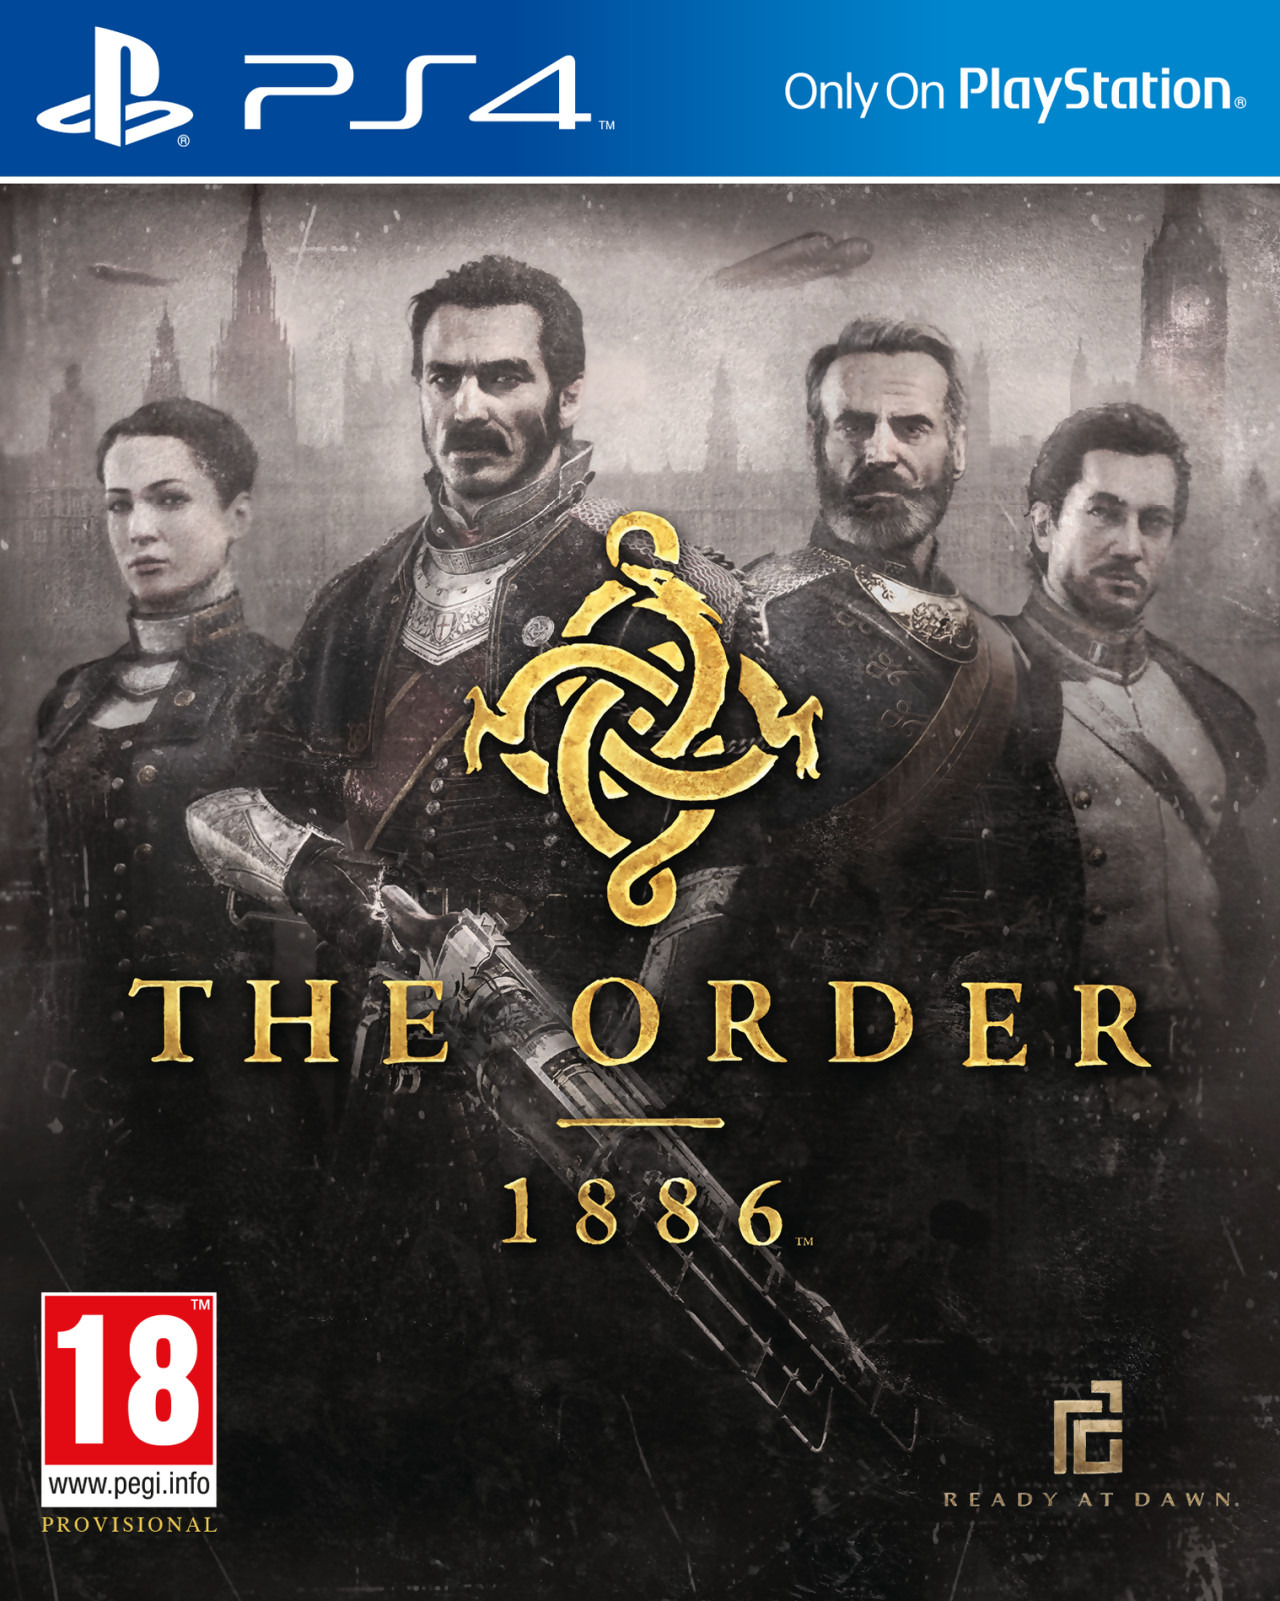 The Order 1886 / Орден 1886 [PS4 Exclusive] 5.05 / 6.72 [EUR] (2015) [Русский/Английский] (v1.02)